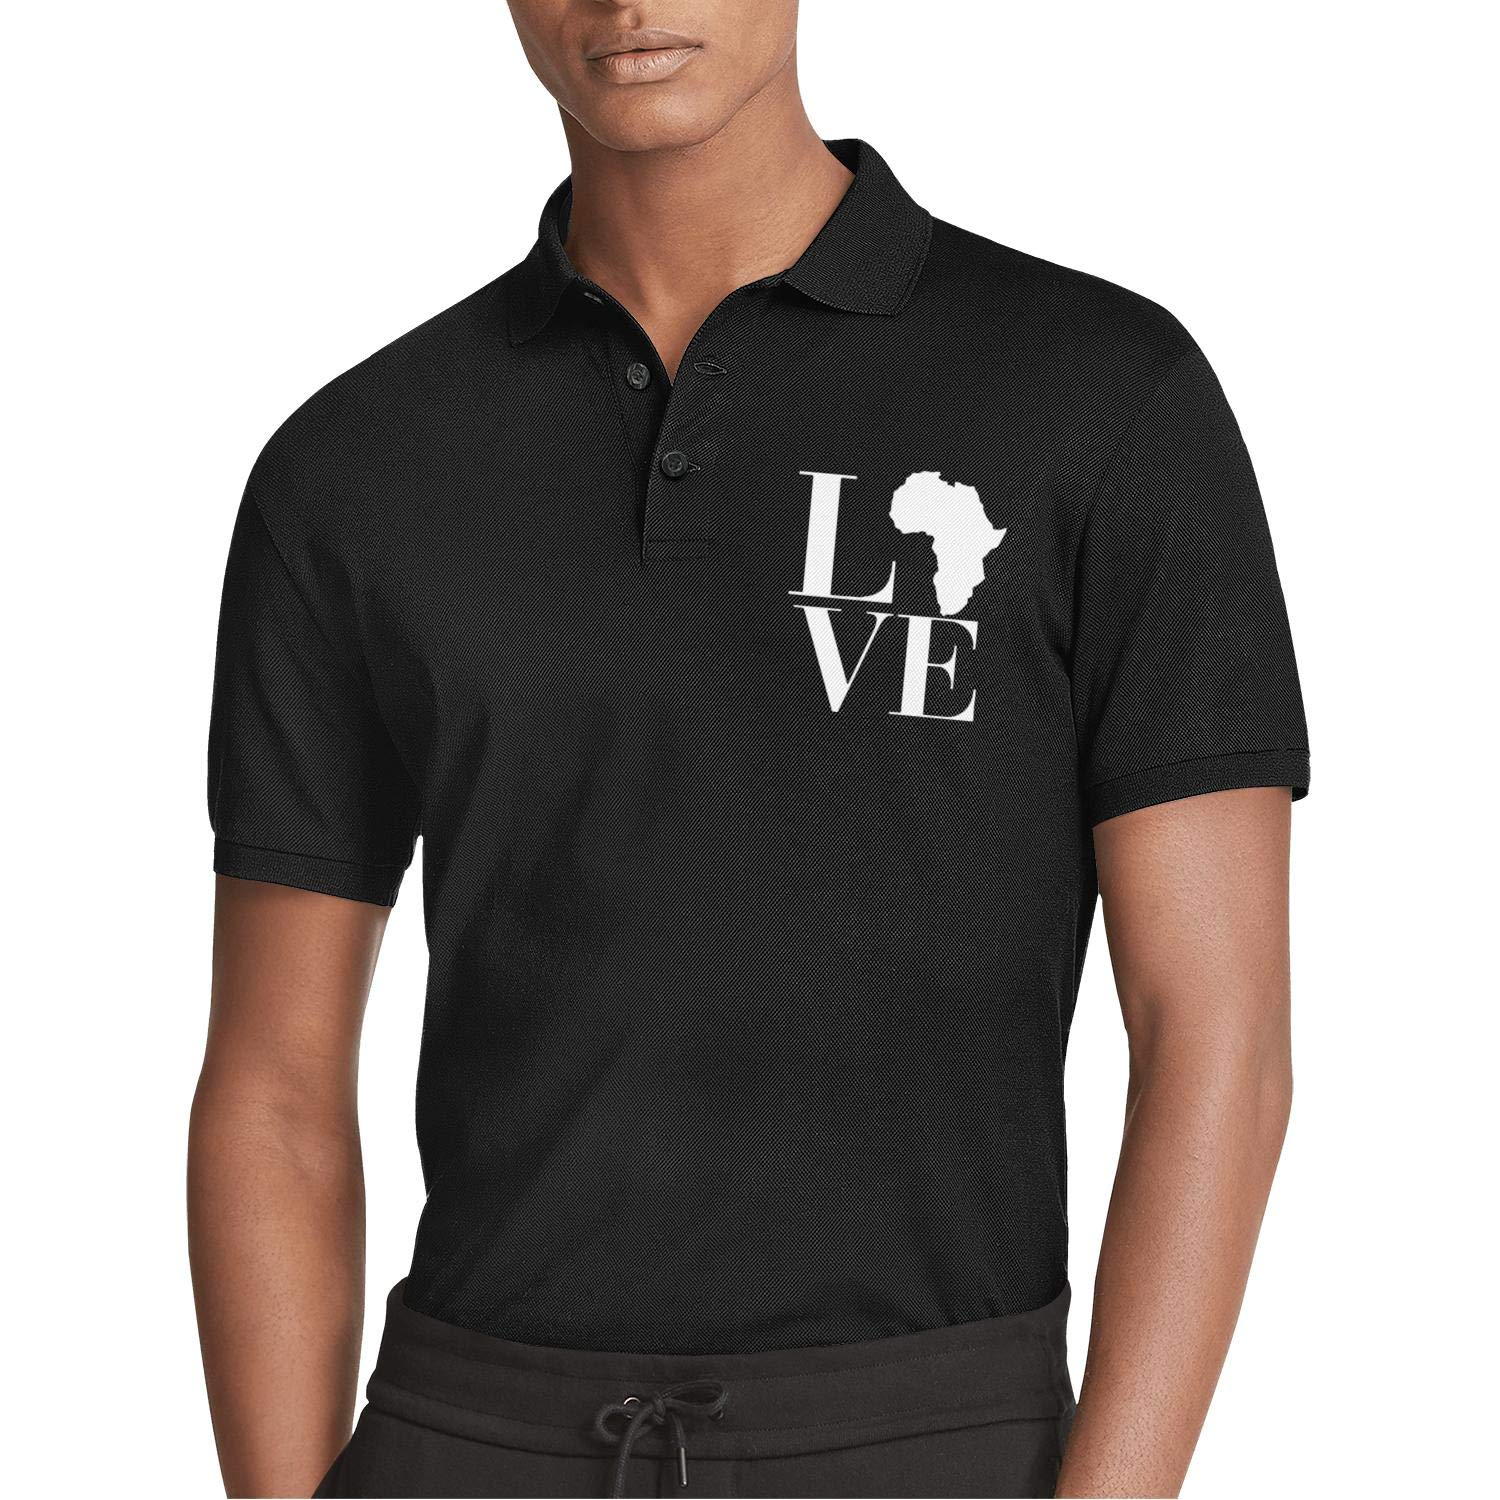 WYFEN Men Printed Polo Shirt Black History Month Love Africa Continent Popular Short Sleeve Tee